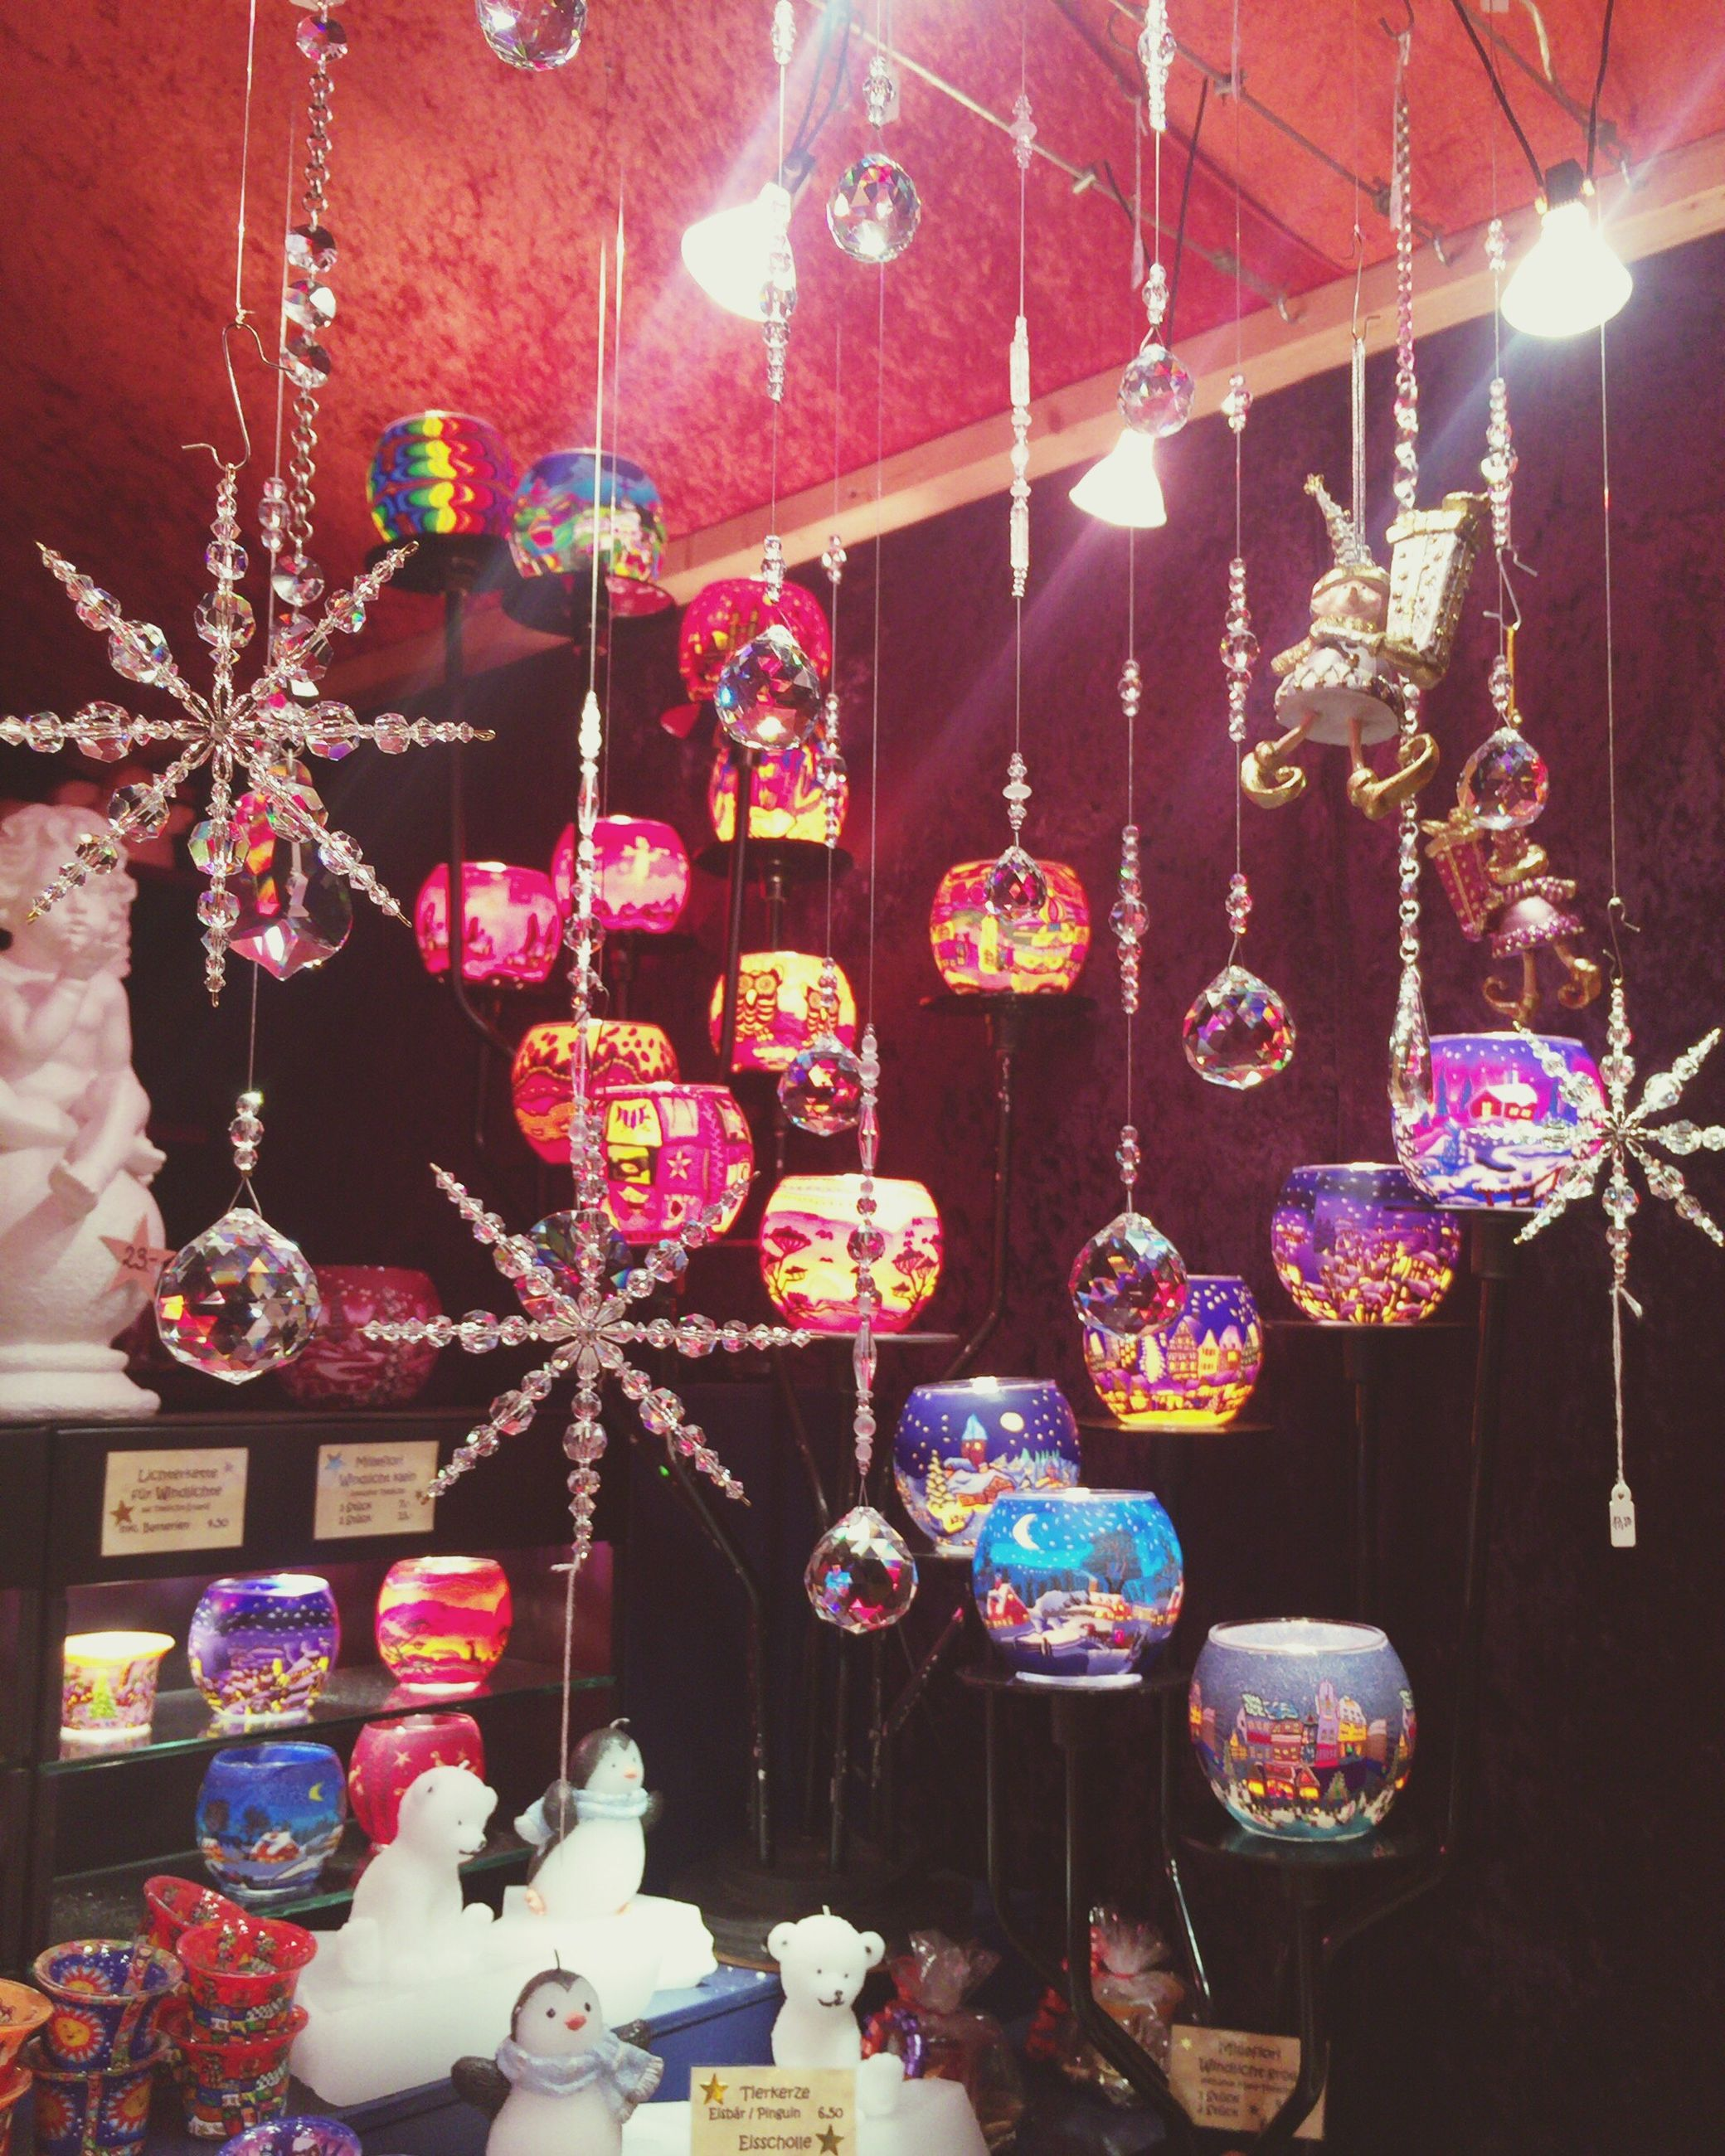 illuminated, indoors, hanging, lighting equipment, decoration, night, retail, celebration, large group of objects, variation, lantern, for sale, choice, tradition, abundance, in a row, electricity, arts culture and entertainment, store, market